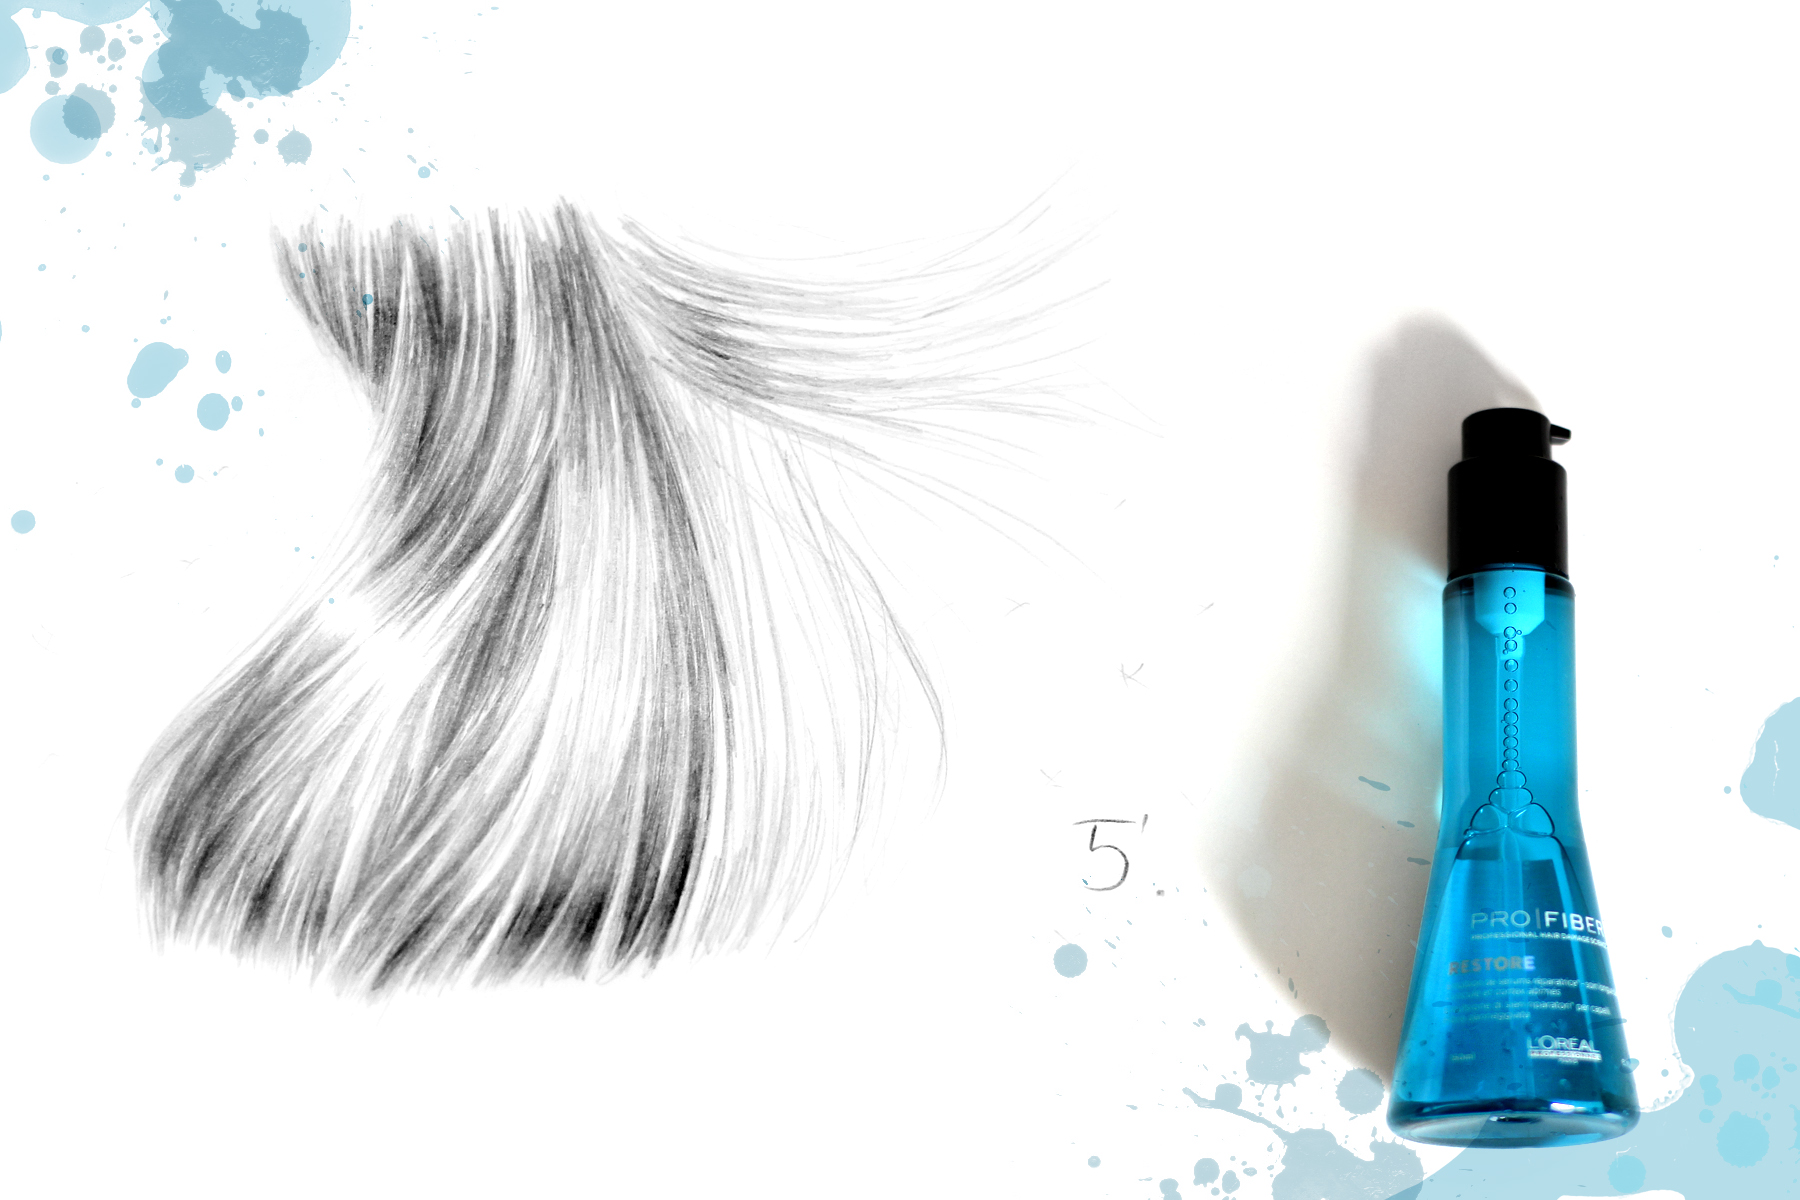 pro fiber l'oréal professionel hair treatment neue pflegerevolution beauty beautyblogger düsseldorf ricarda schernus blog illustration drawing art cats & dogs berlin 1